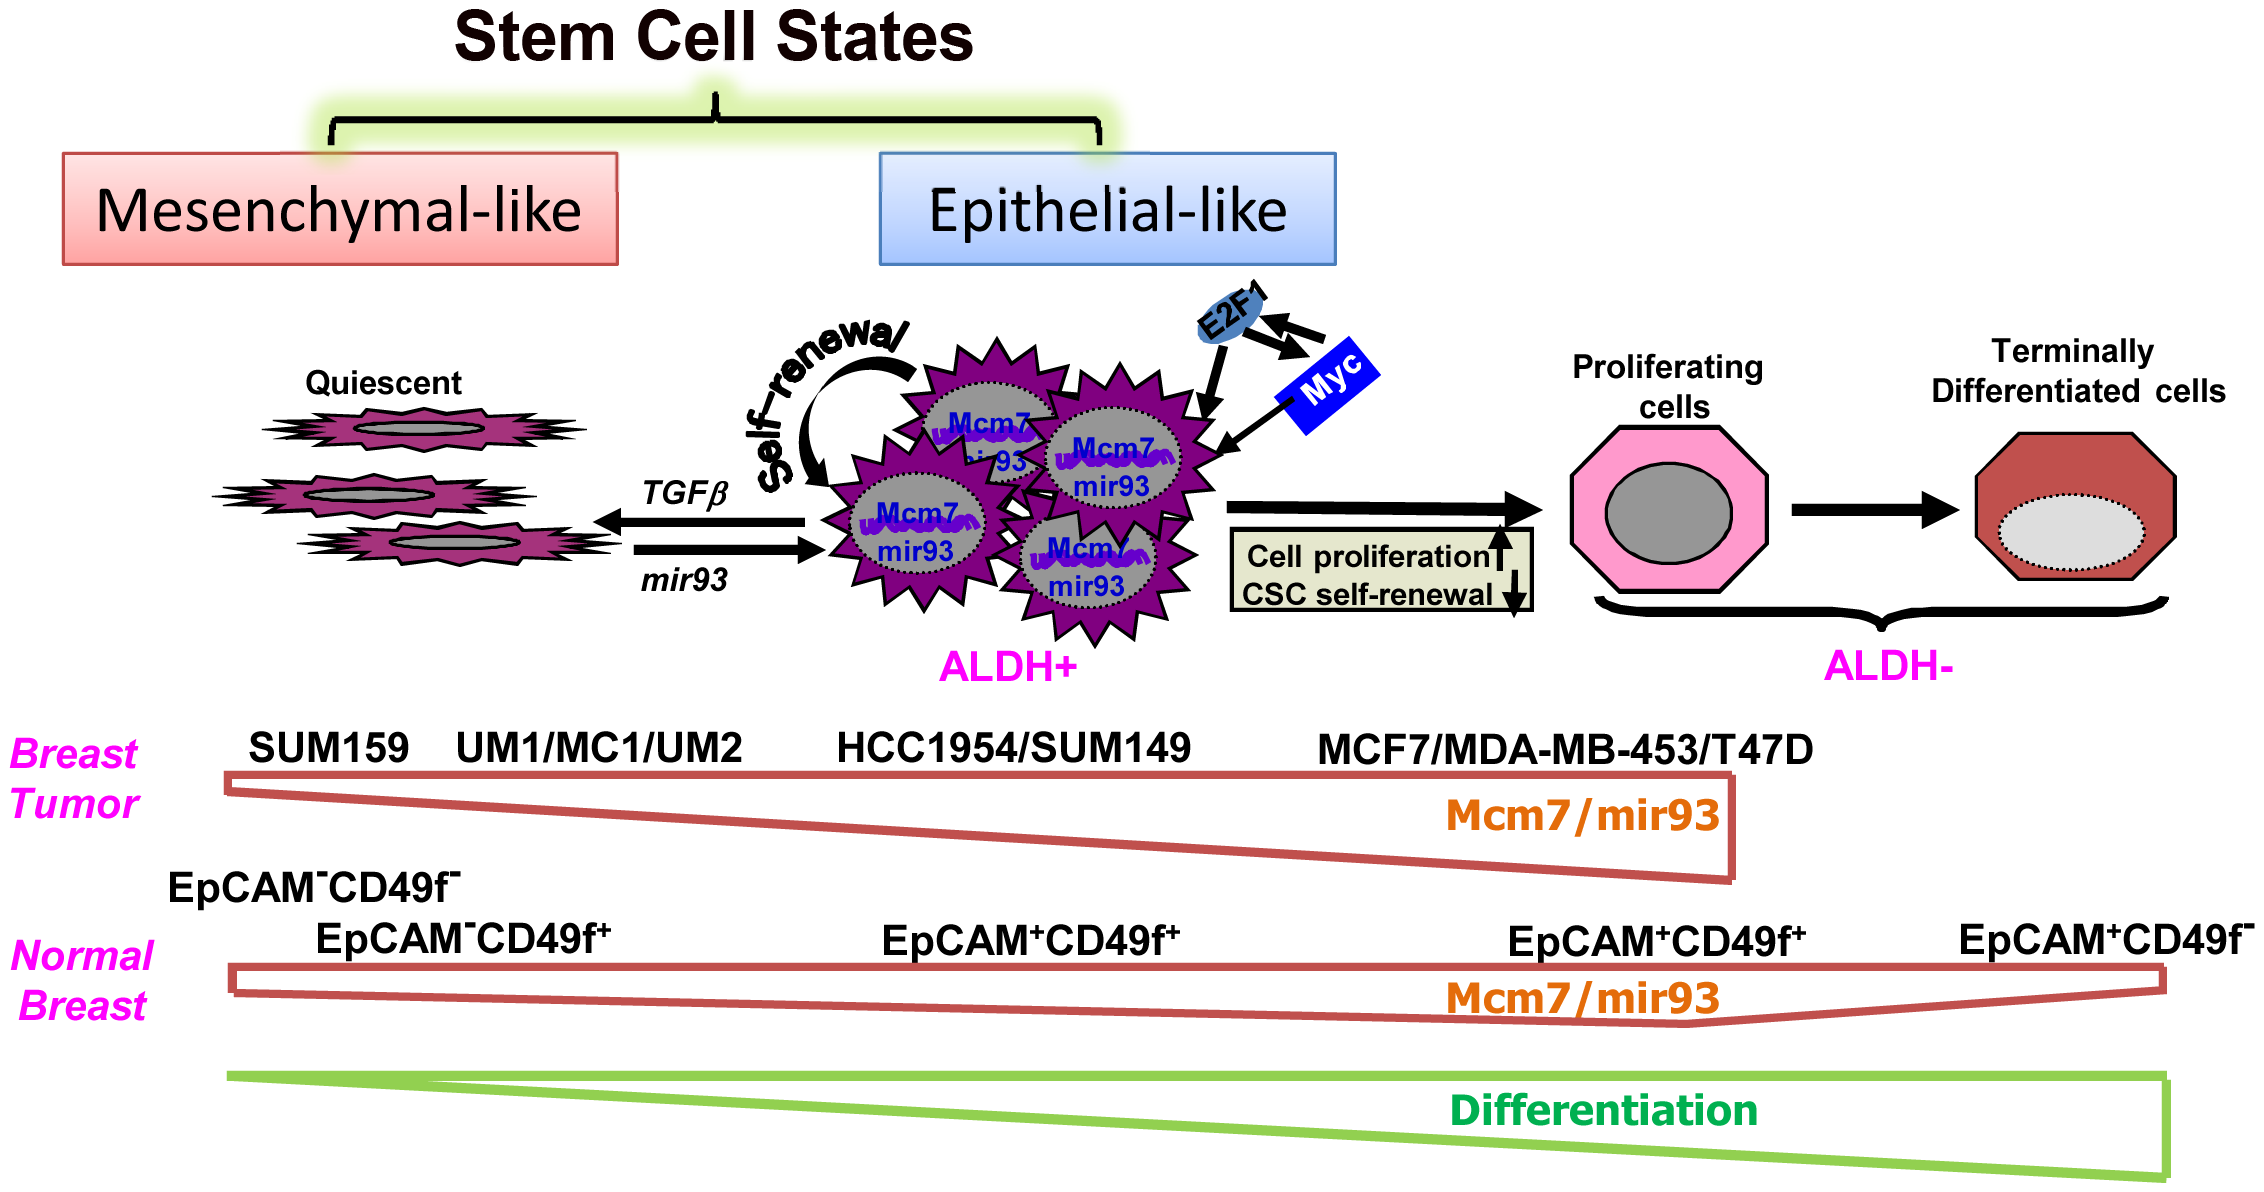 A hypothetic model illustrating regulation of normal and malignant mammary stem cell states and fates by mir-93.